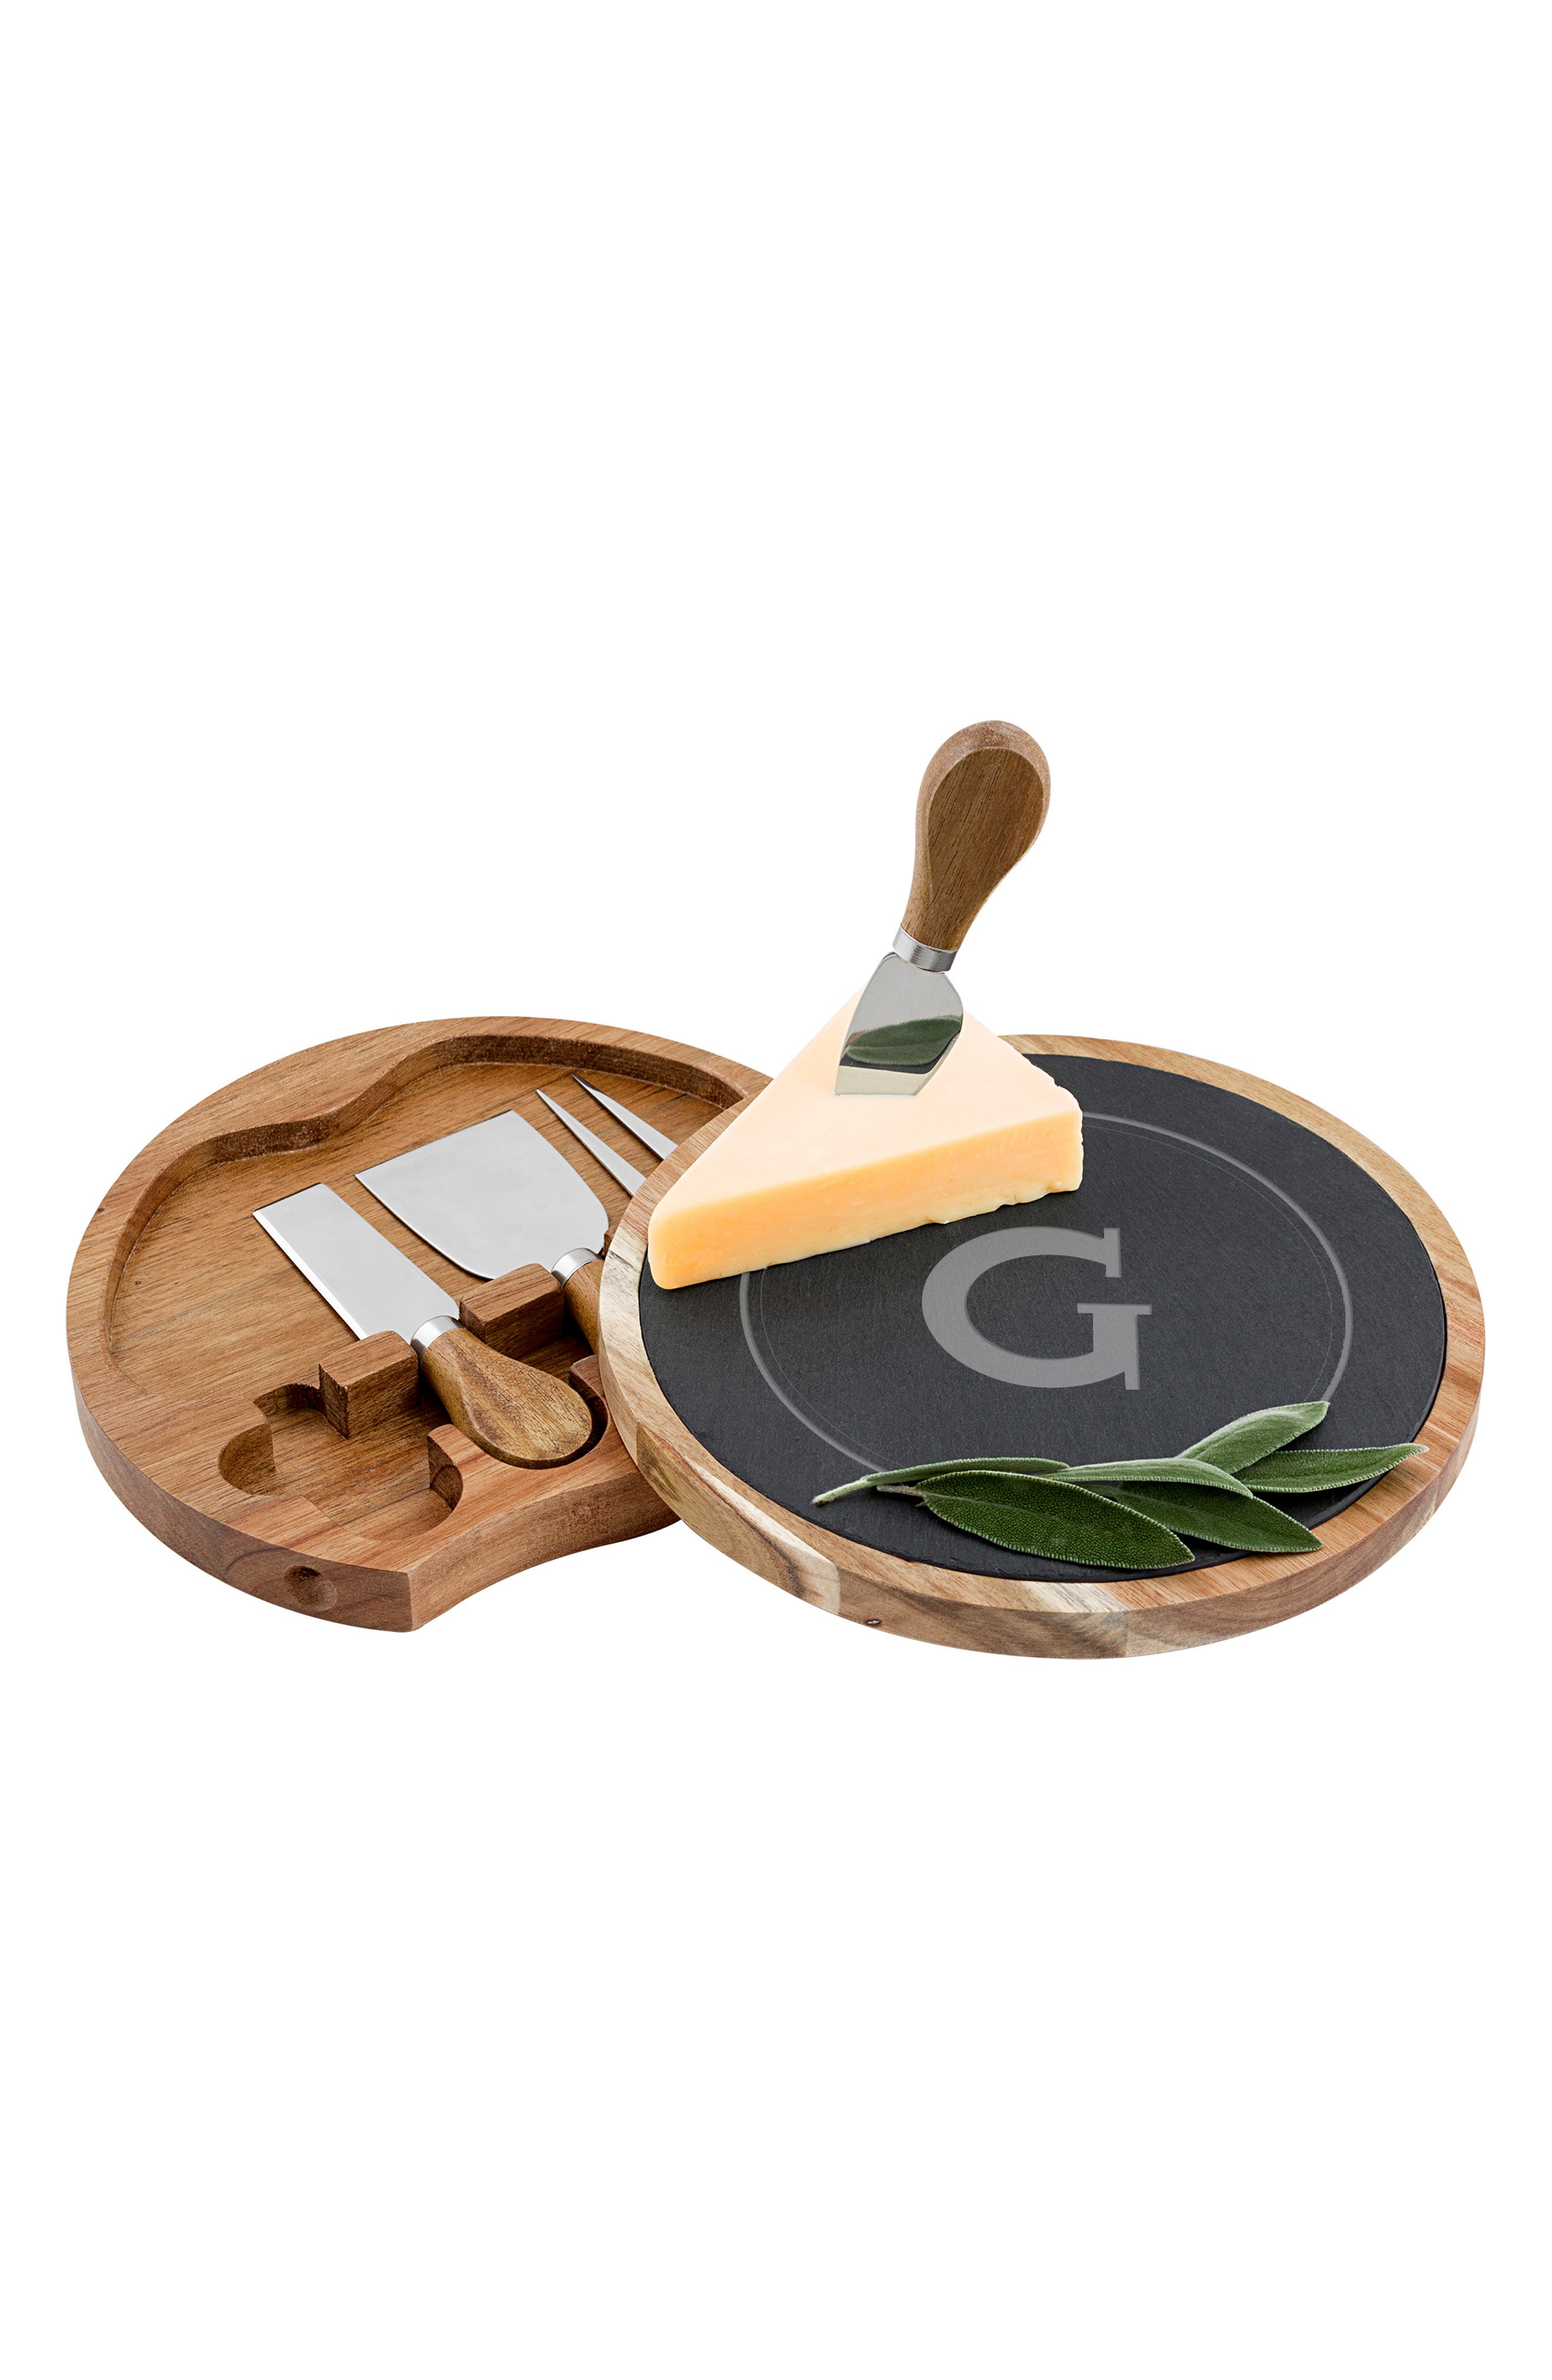 A perfectly portable cheese board crafted from acacia wood and natural slate makes an ideal wine-and-cheese party serving tray. It is made even better for picnics thanks to built-in storage for the accompanying cheese knife, shaver, fork and spreader. Style Name: Cathy\\\'s Concepts Monogram 5-Piece Cheese Board & Utensil Set. Style Number: 5641885. Available in stores.